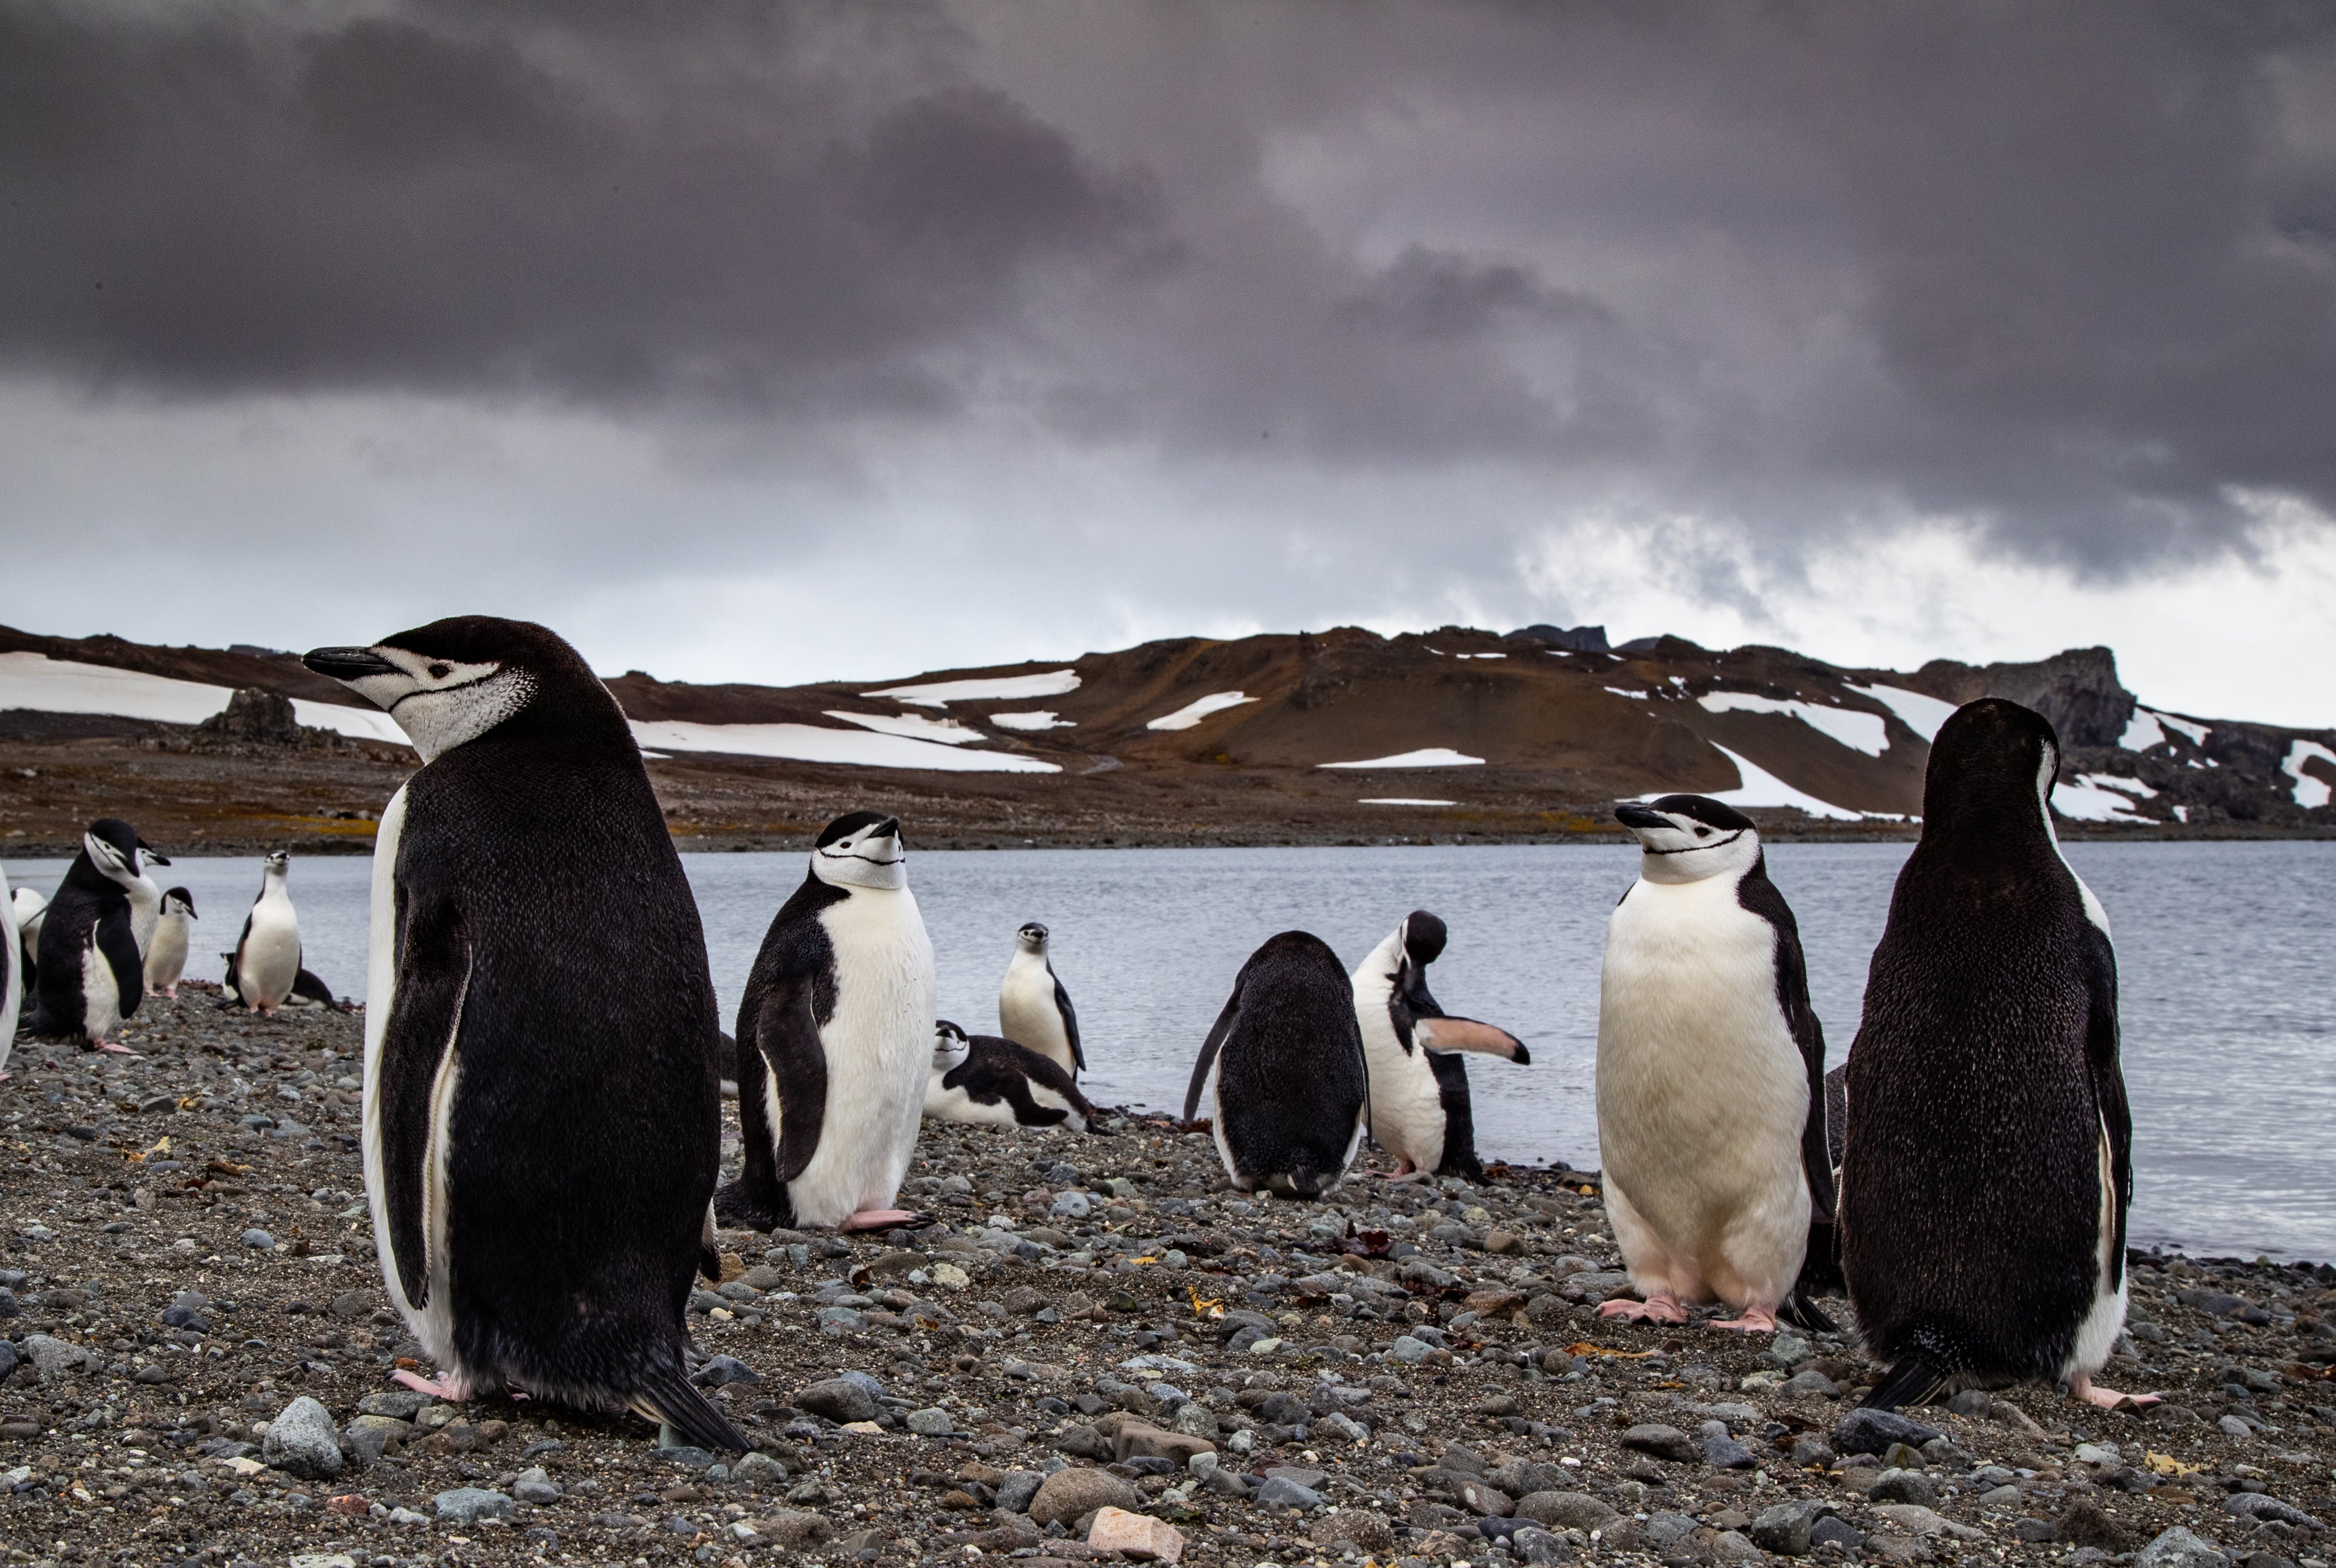 A colony of penguins in the Antarctic Peninsula. Photo by Manu San Felix, National Geographic Pristine Seas.